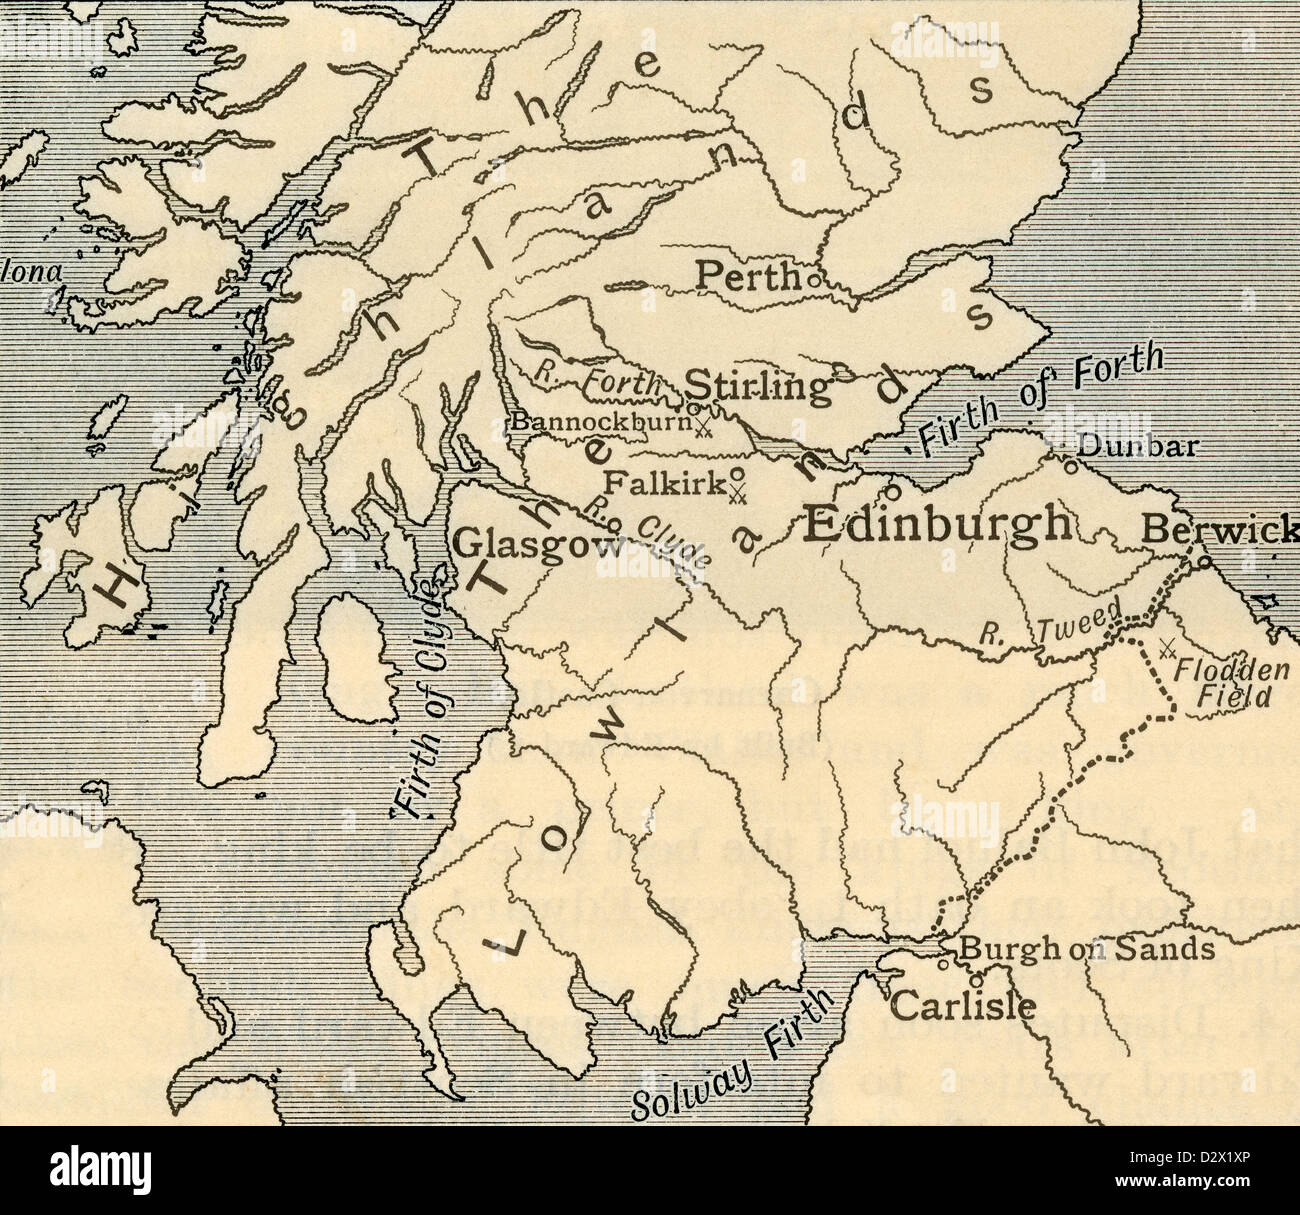 Map of Southern Scotland during the late middle ages. From A First Book of British History published 1925. - Stock Image